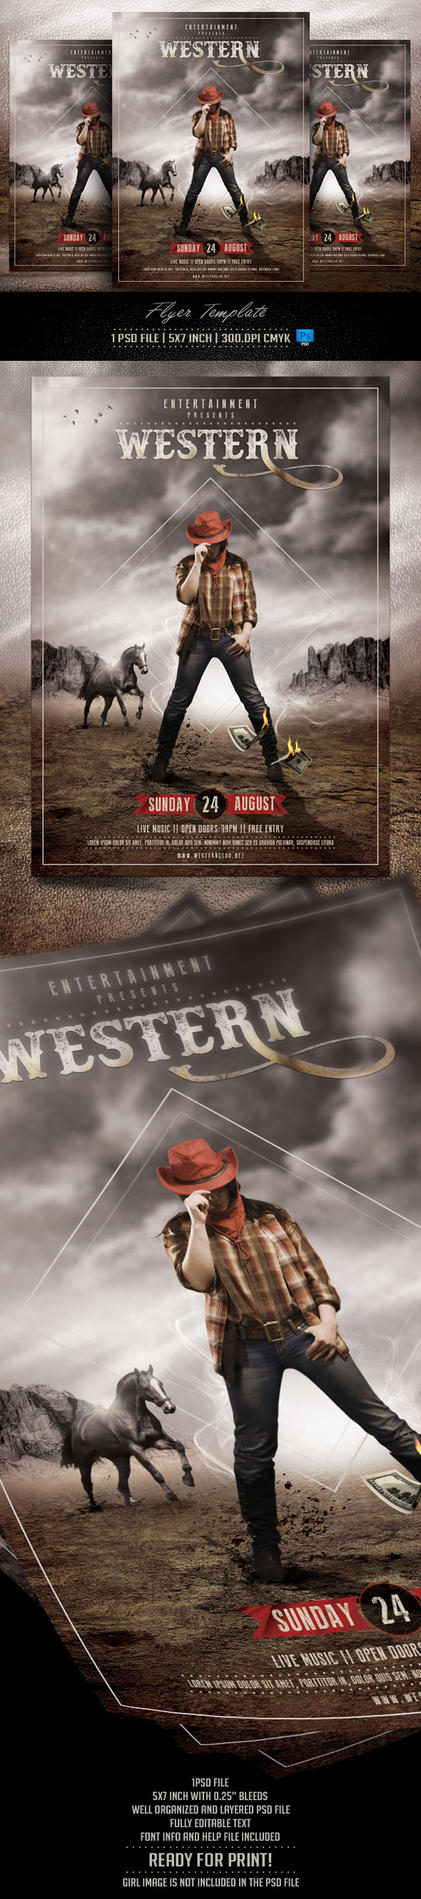 Western Flyer Template by BriellDesign